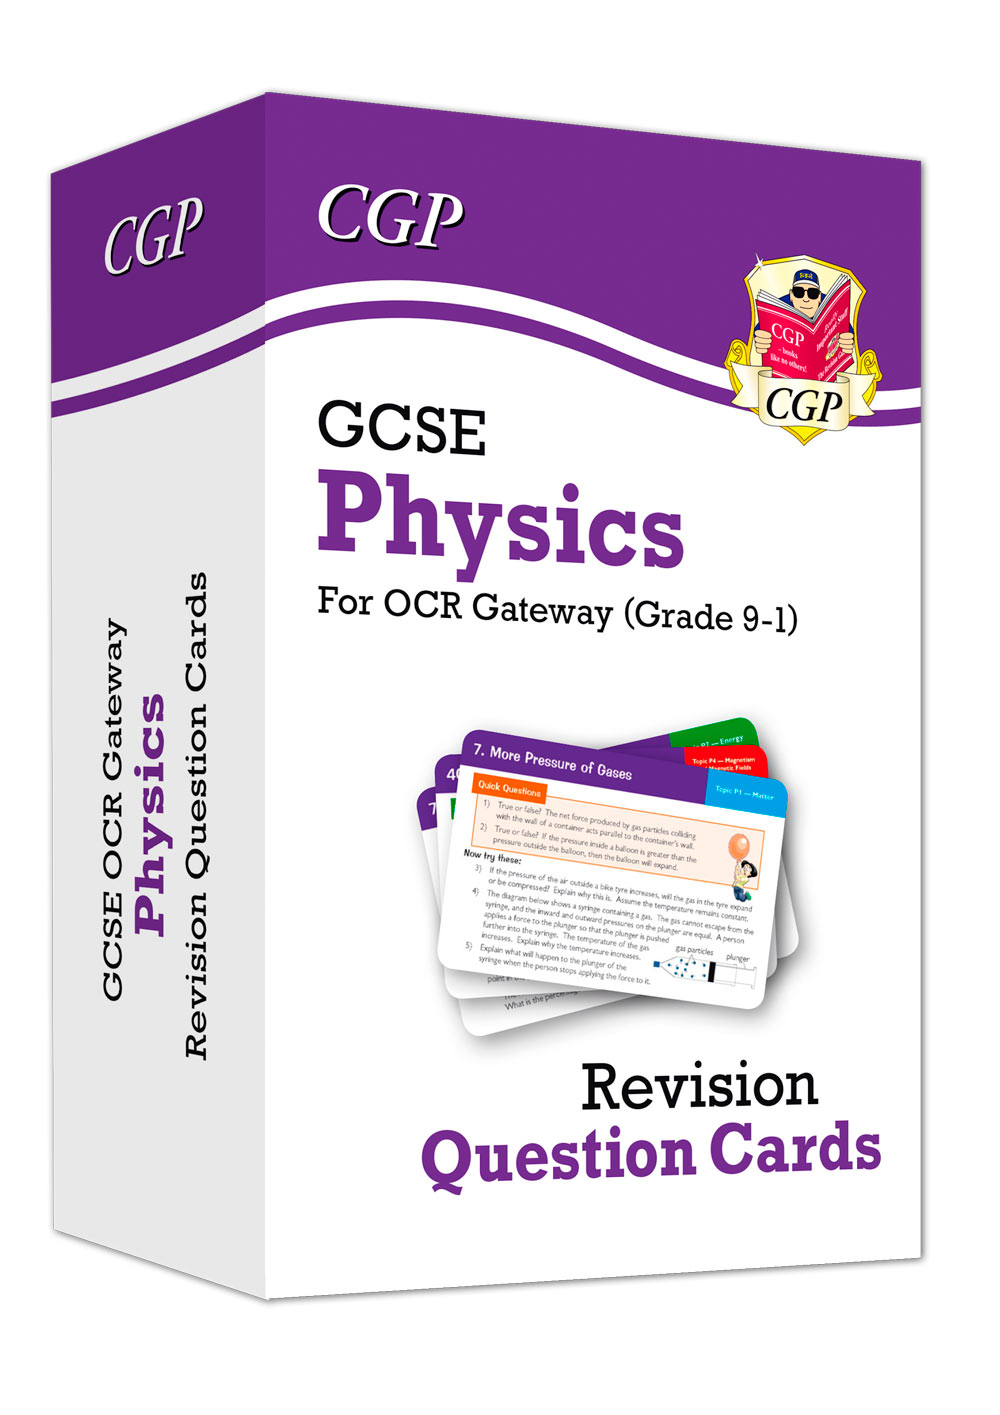 PRF41 - New 9-1 GCSE Physics OCR Gateway Revision Question Cards